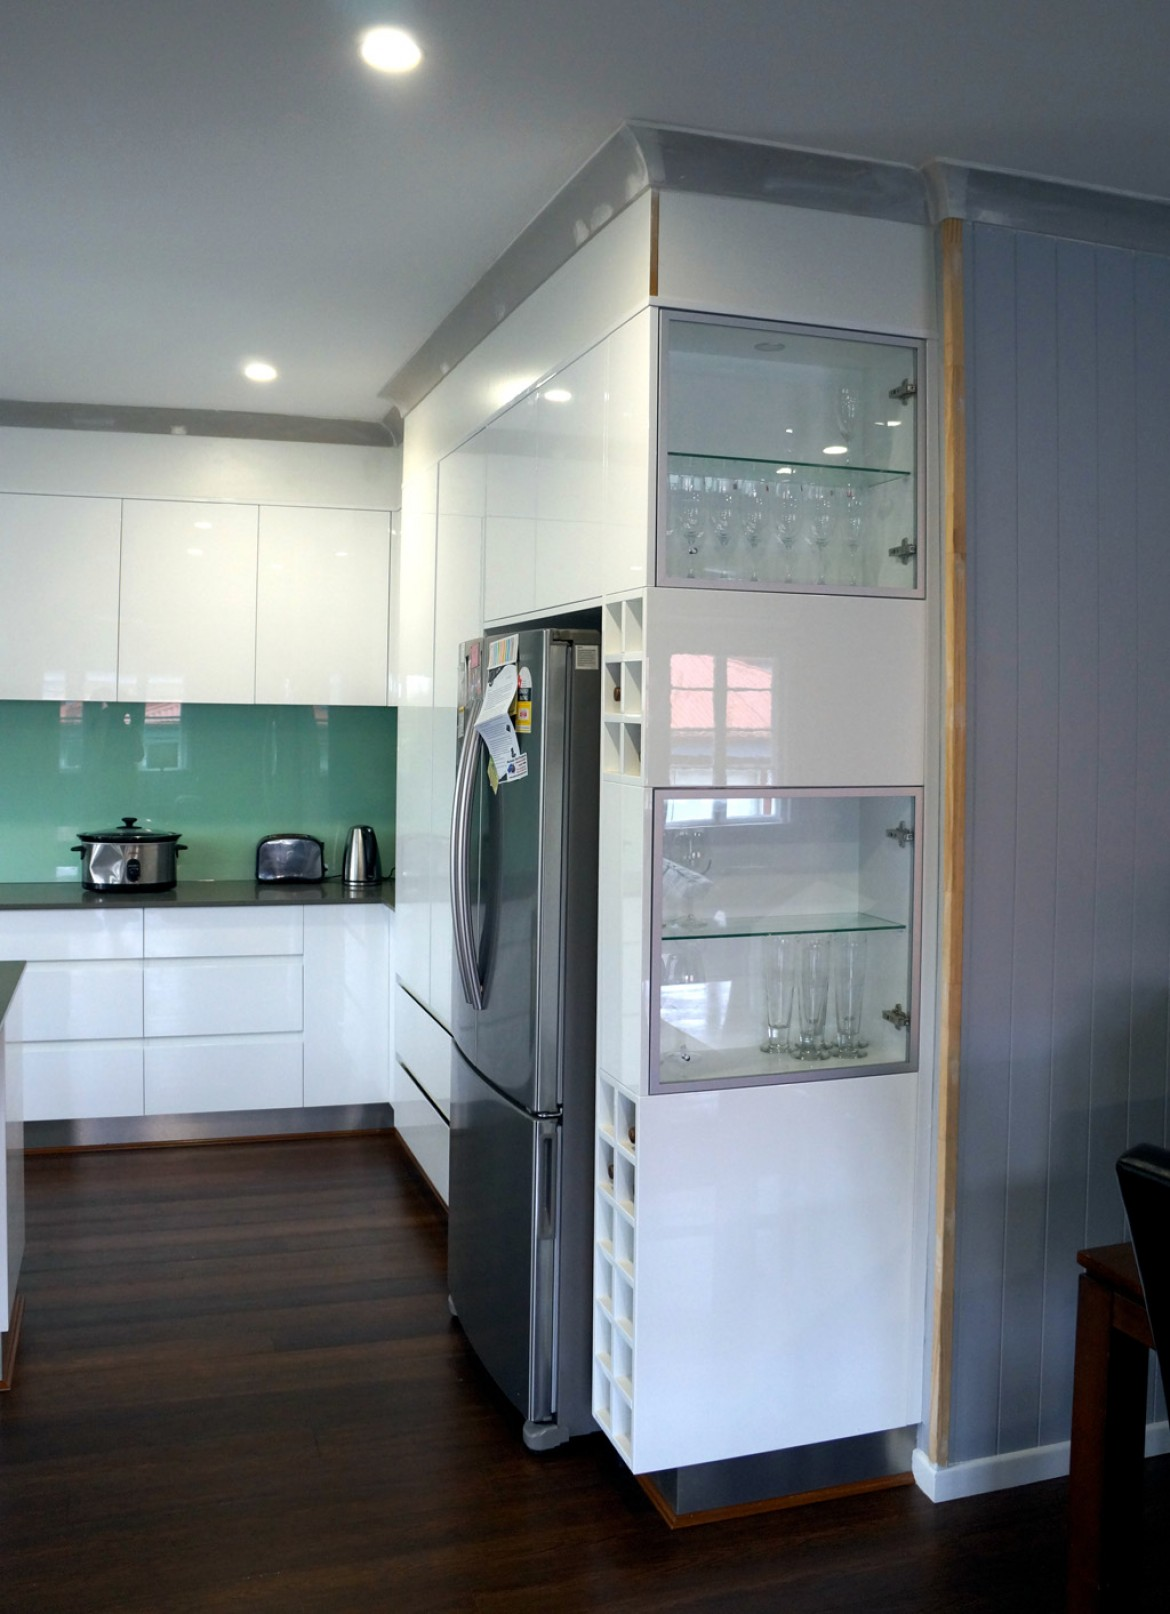 Kitchen display cabinet with built-in spotlights - Mike Design